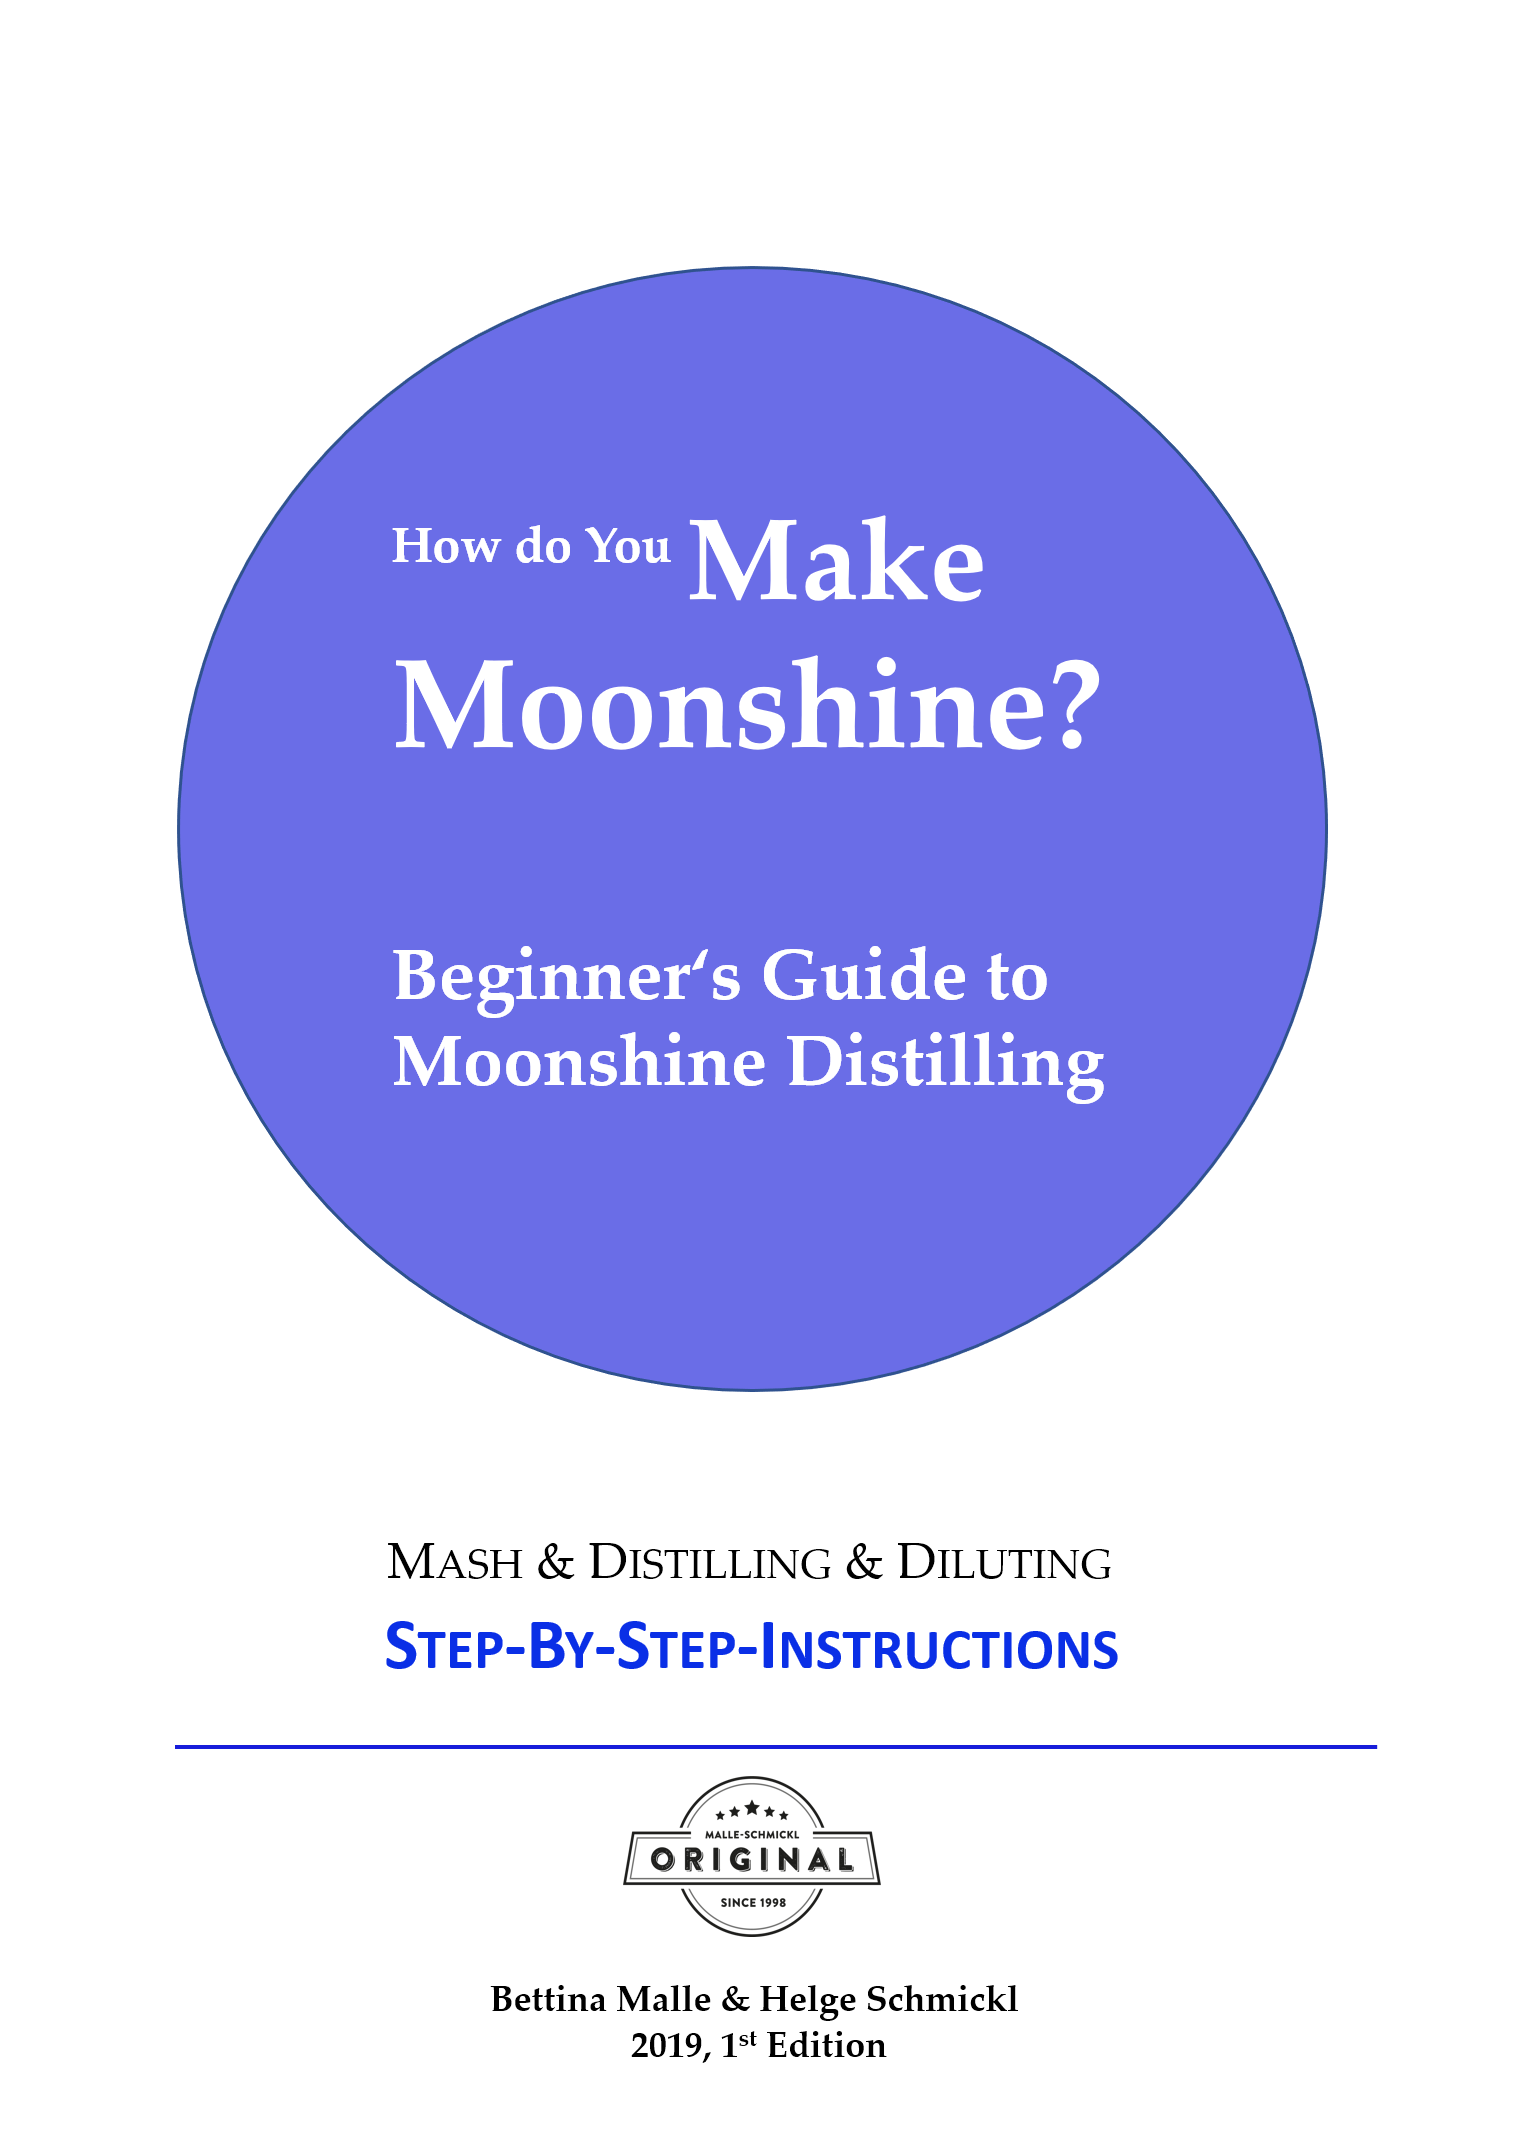 How do You Make Moonshine